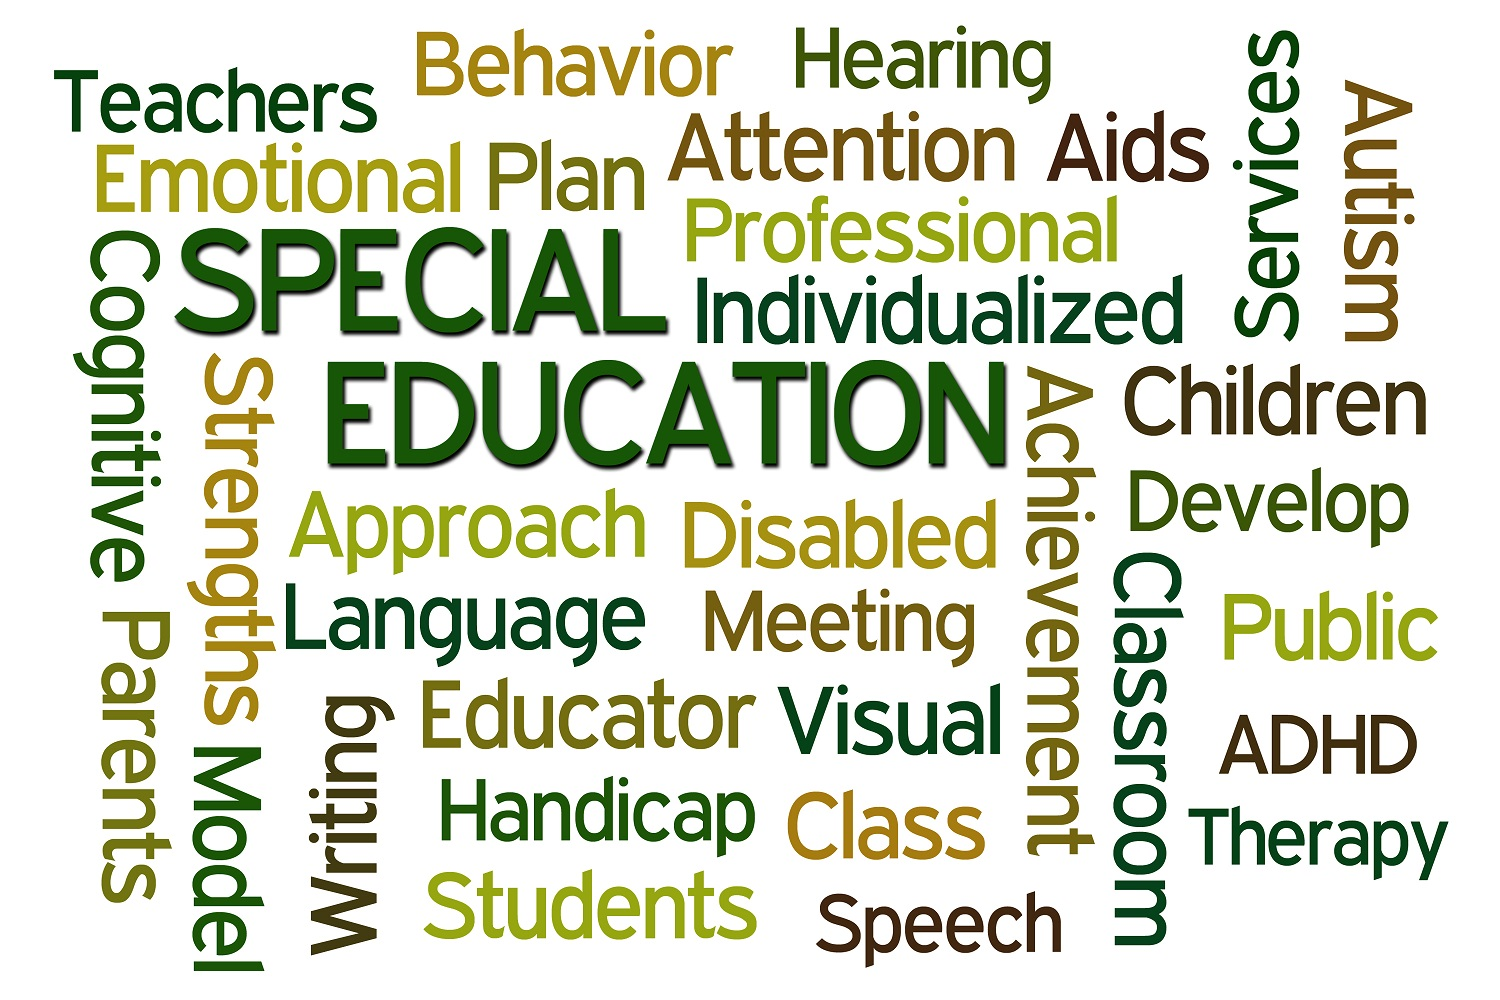 education speech Education reform is the great social justice cause of our times if we are to deliver a fairer society, in which opportunity is shared more widely, we must secure the highest standards of.